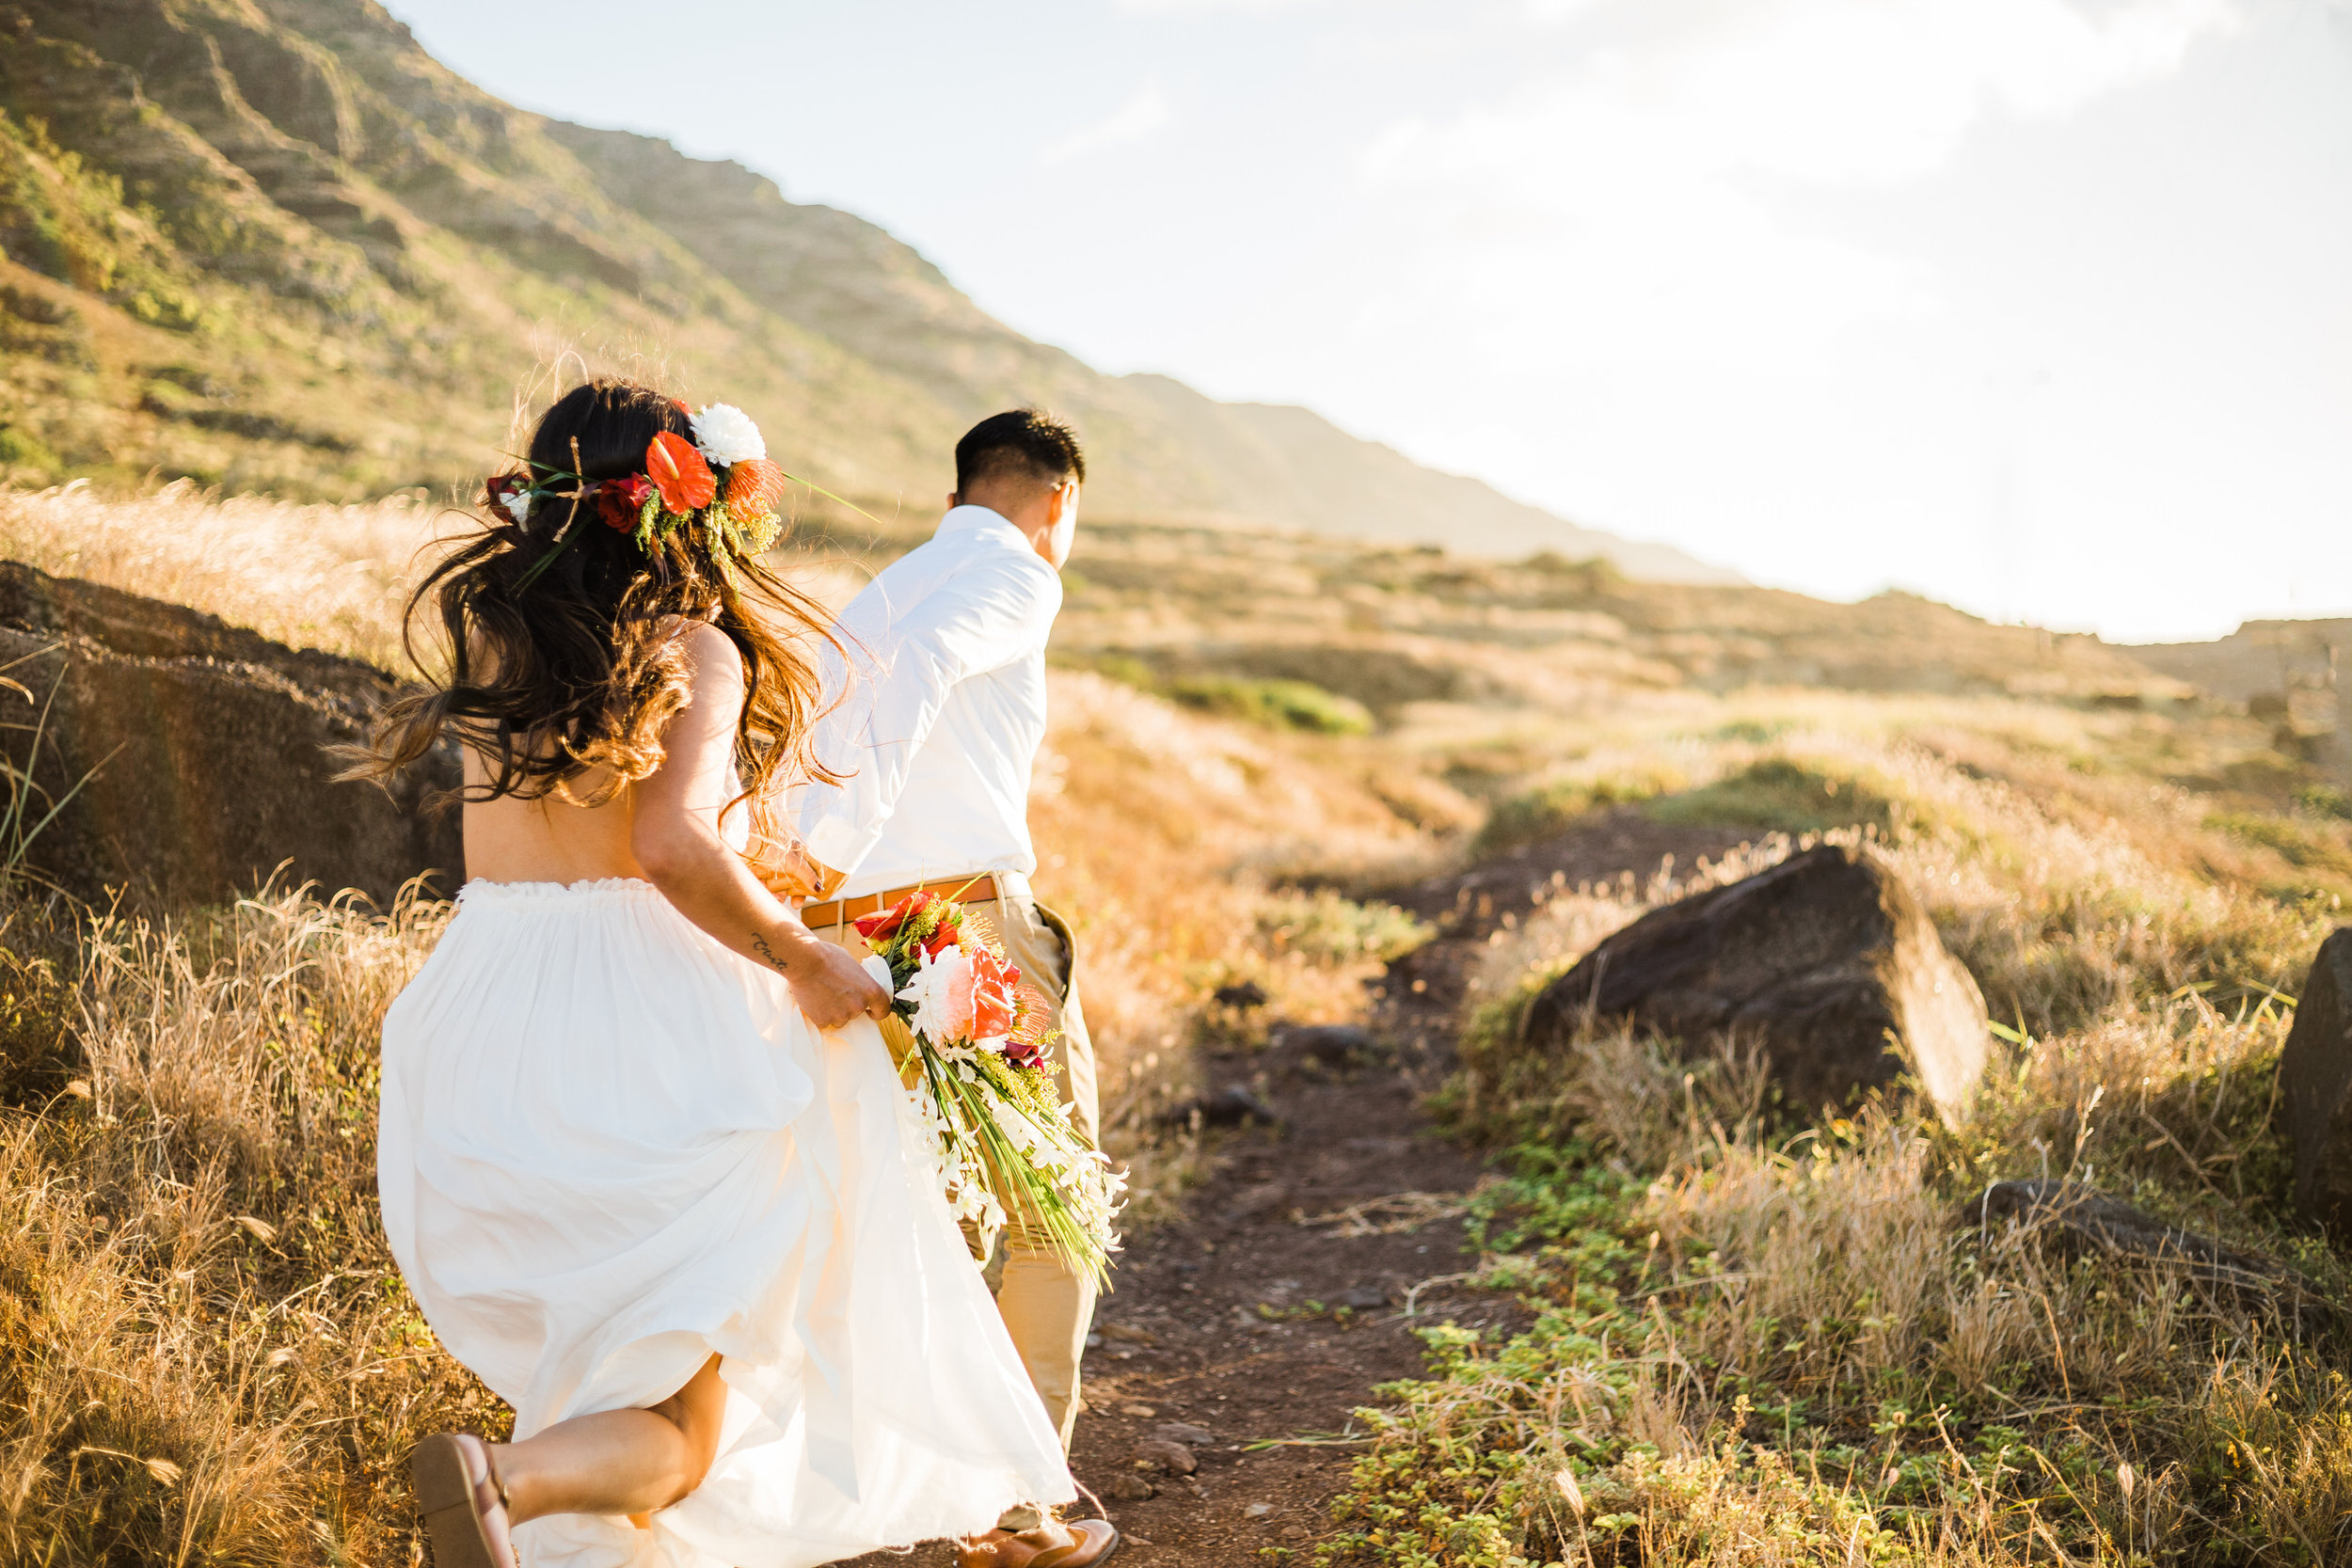 intimate-elopement-sunset-oahu-haku-11.jpg